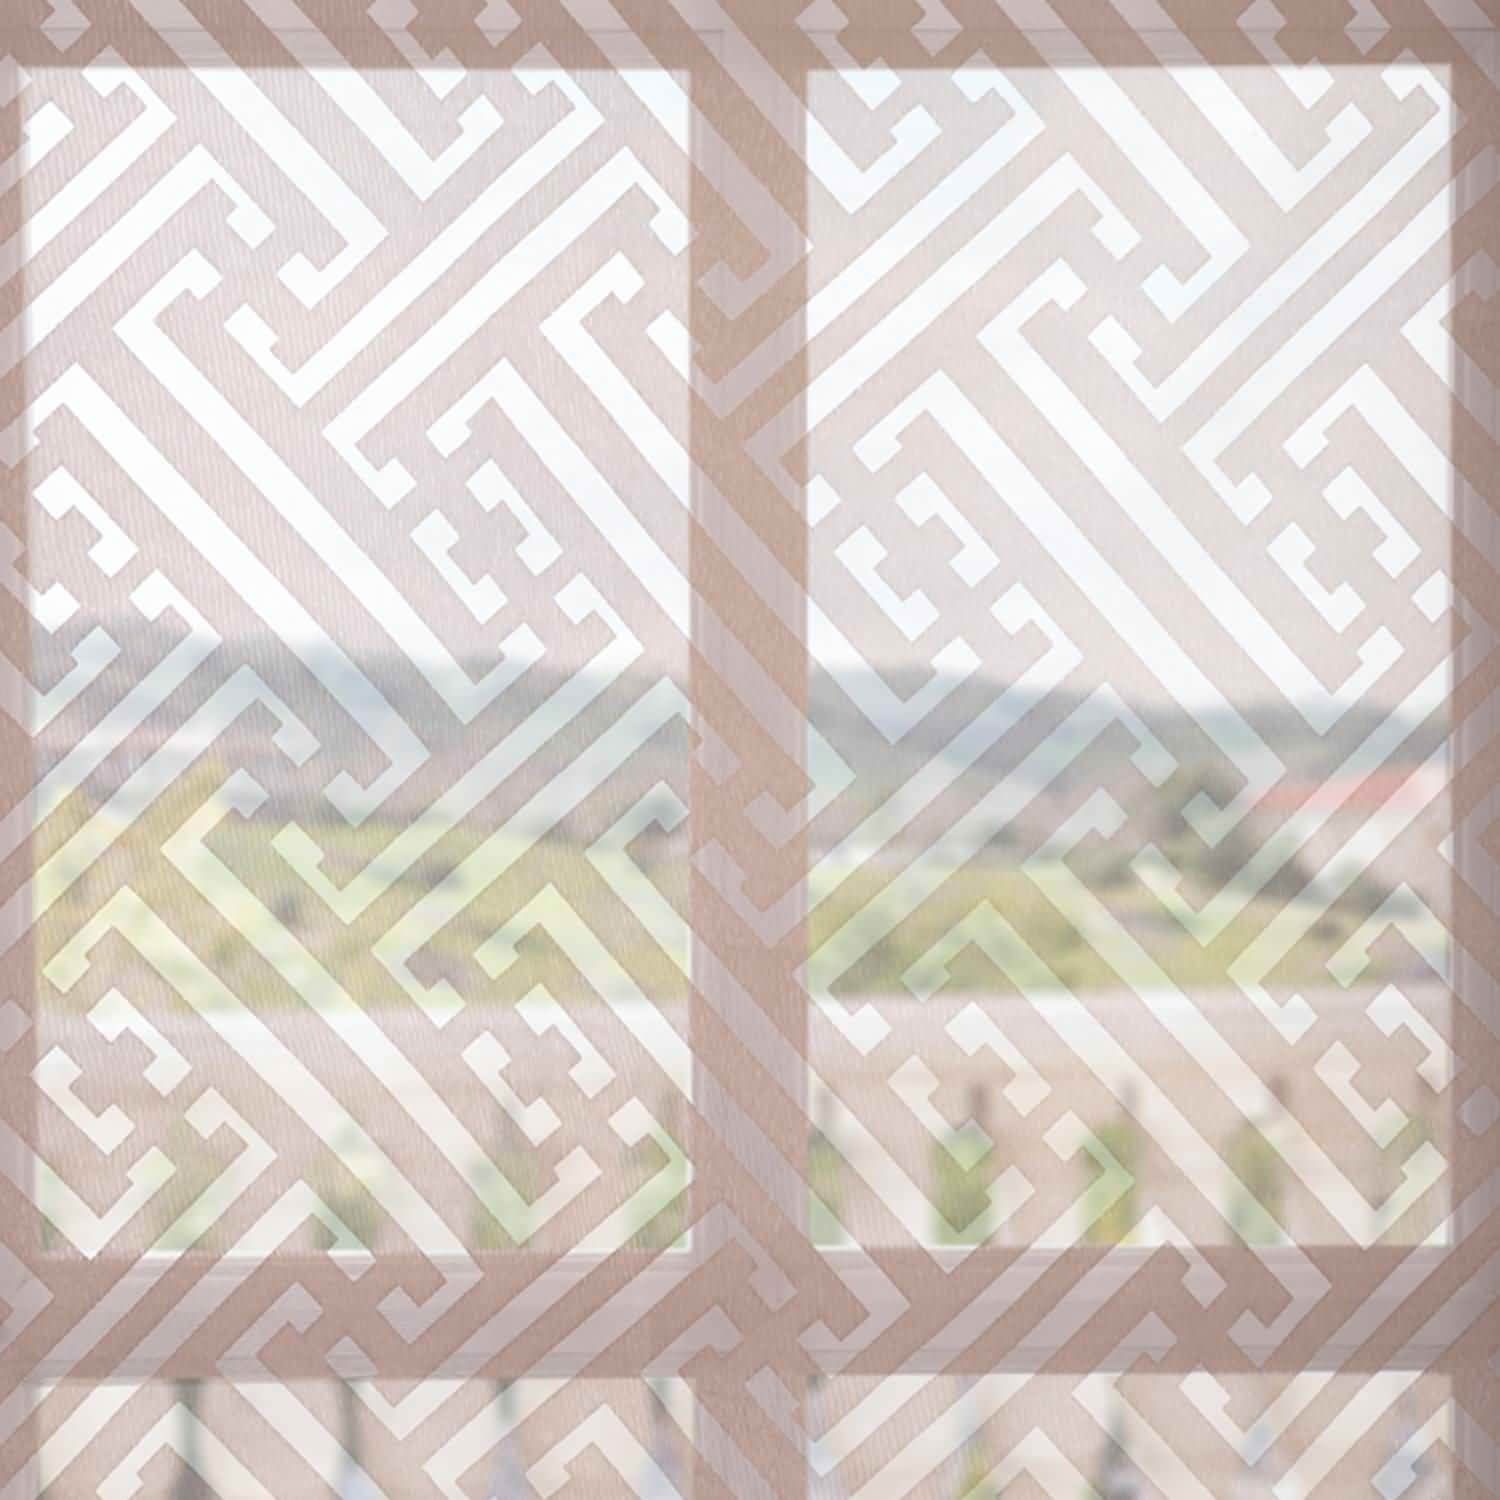 Zara Taupe Patterned Sheer Swatch